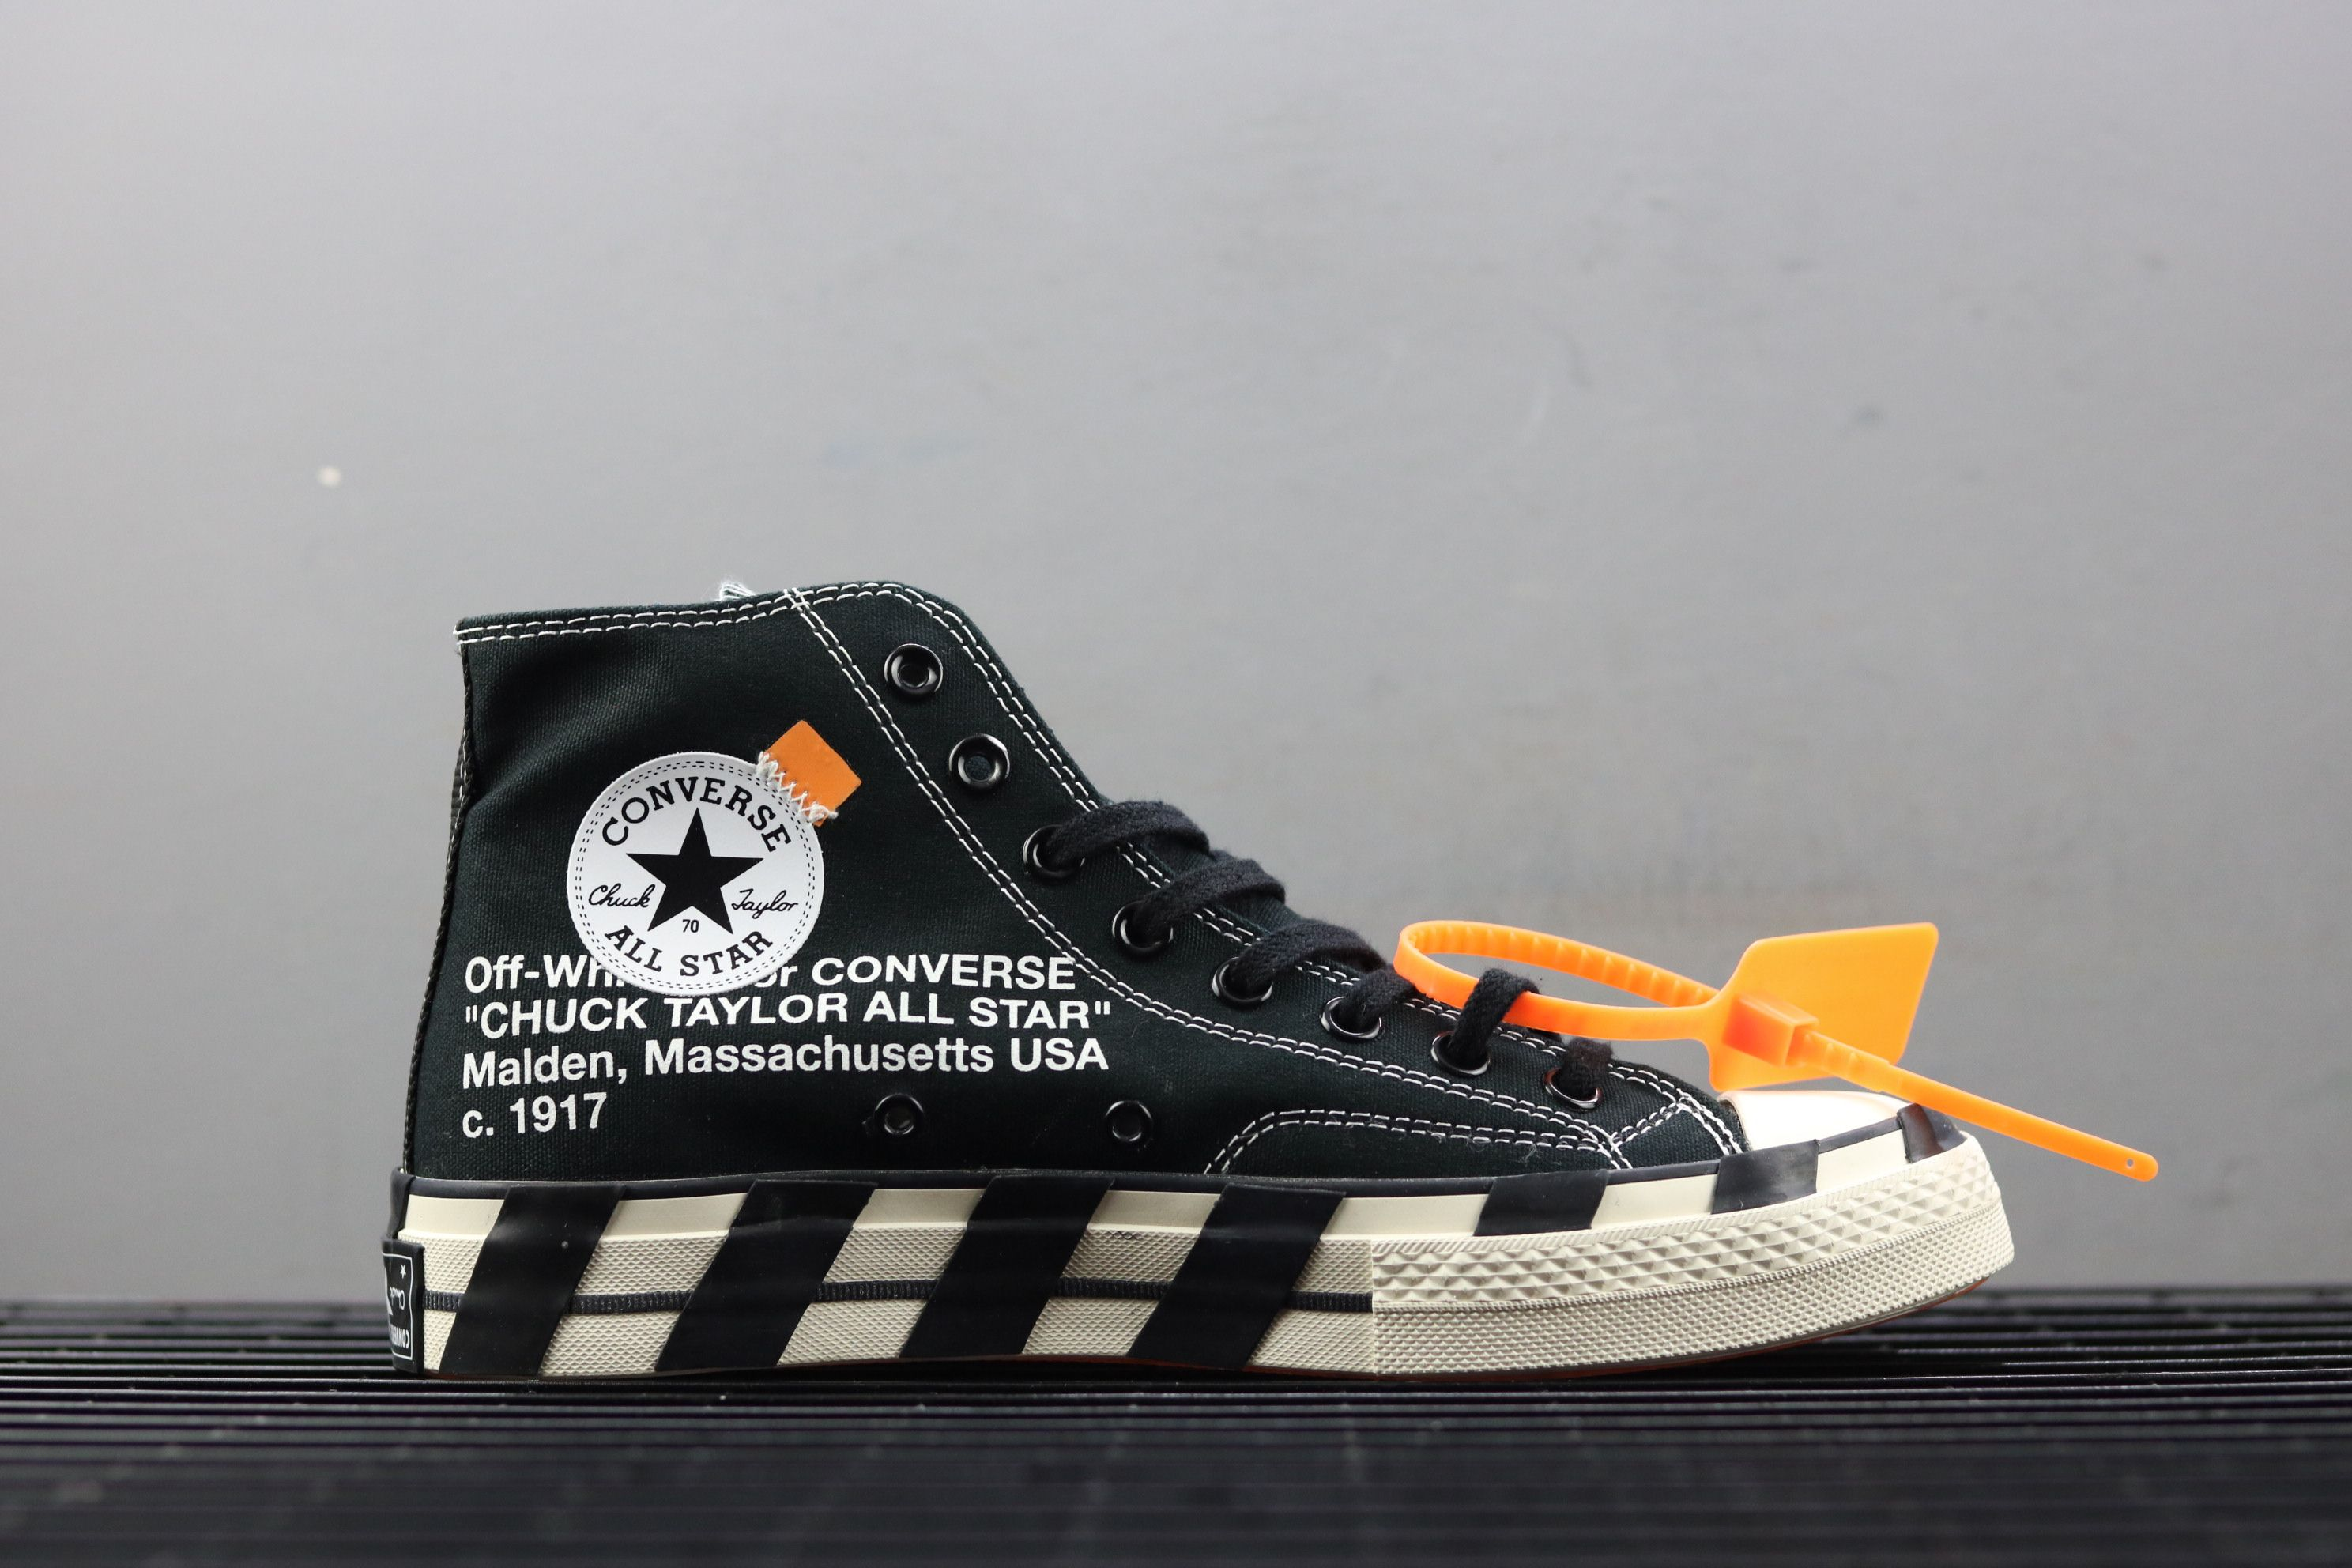 Off White X Converse 2 0 Black On Sale Now Chuck Taylors Off White Shoes Converse Chuck Taylor